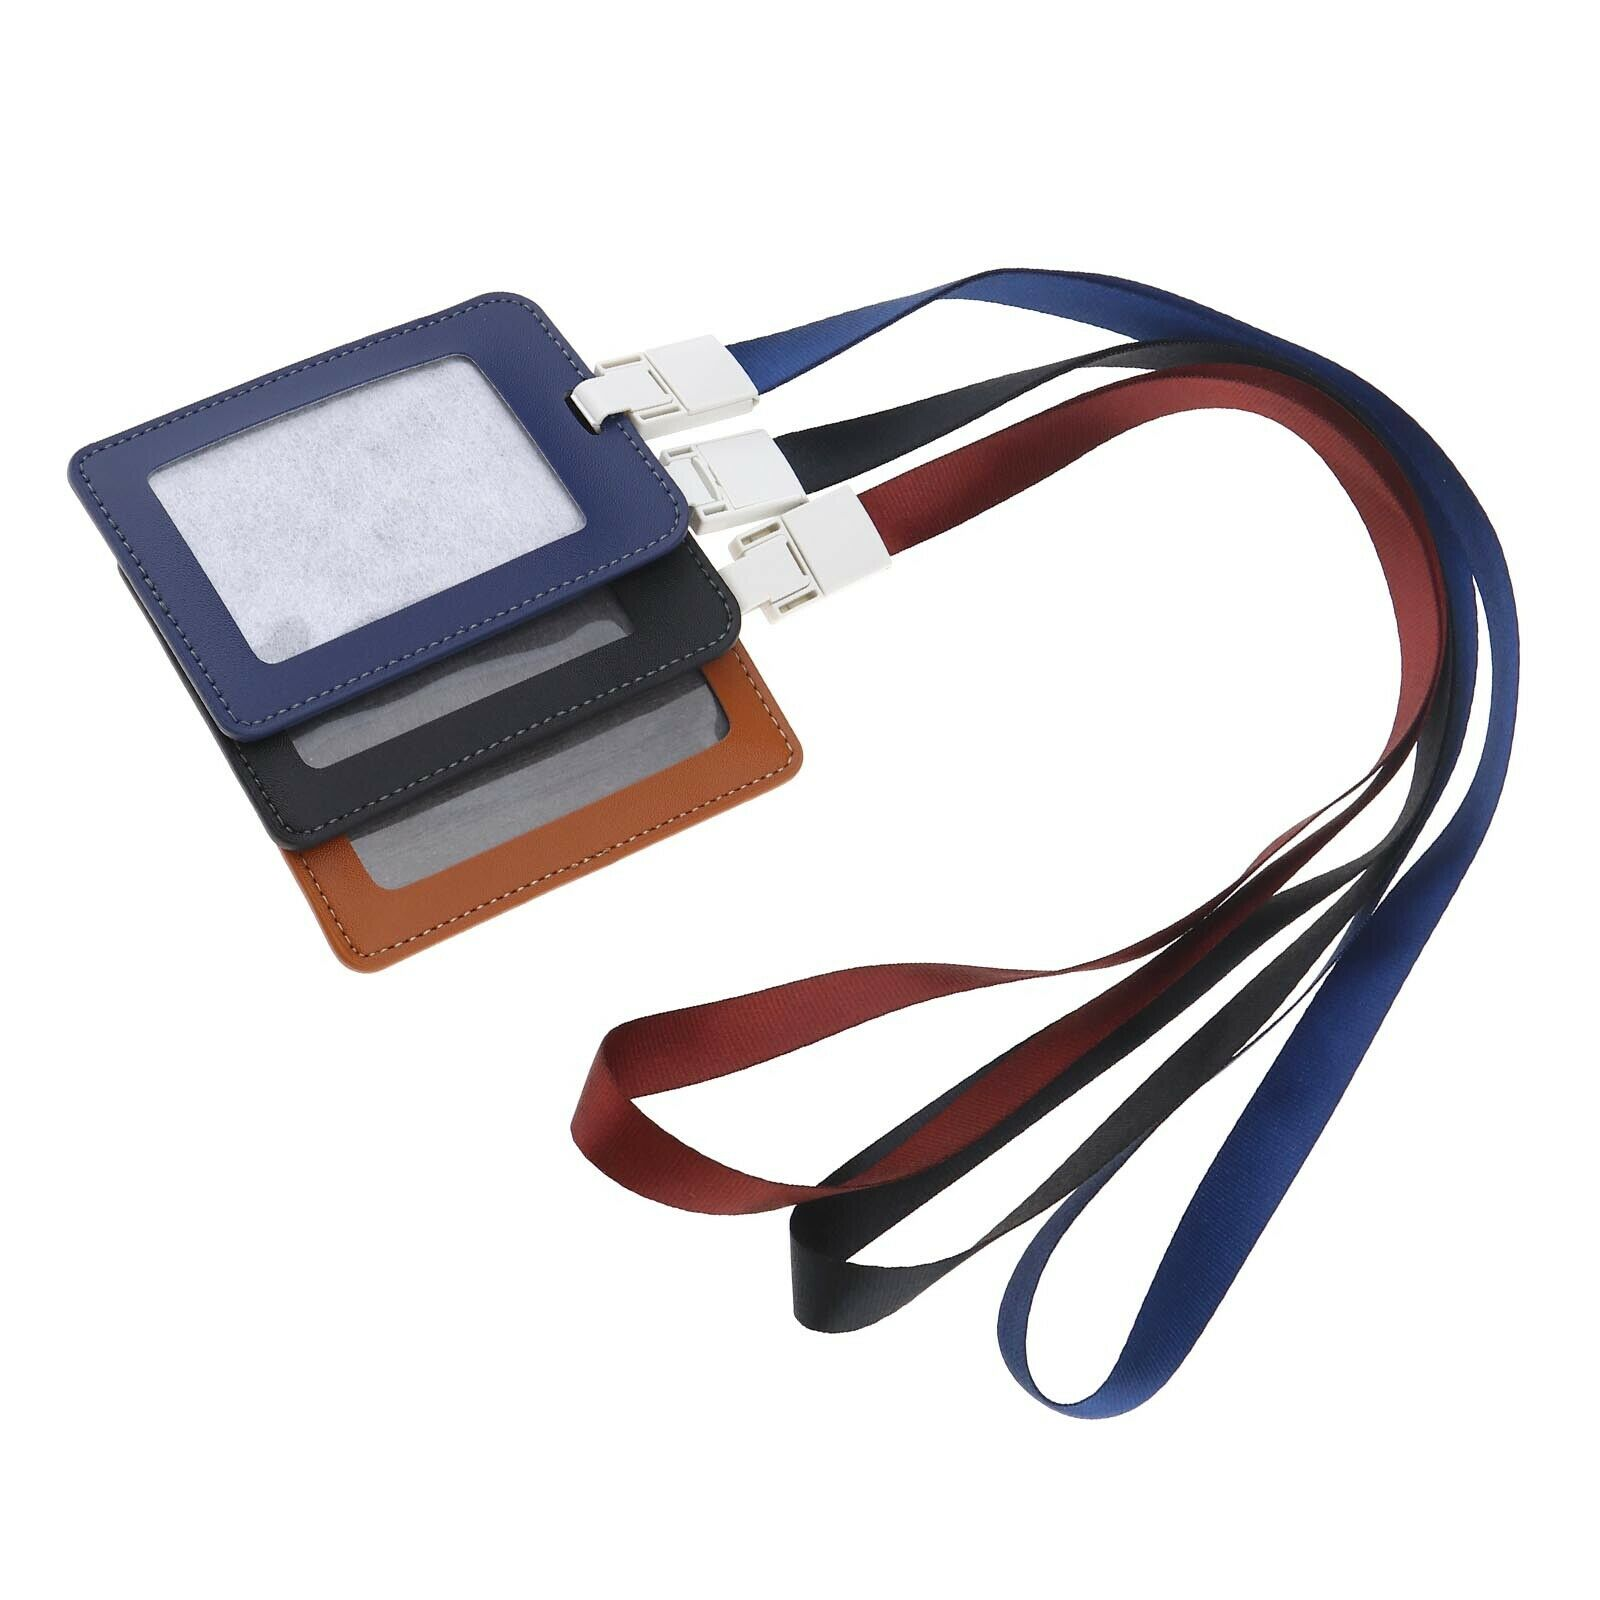 3x Heavy Duty Work Permit Card Cover Multicolour Card Holders with Lanyard